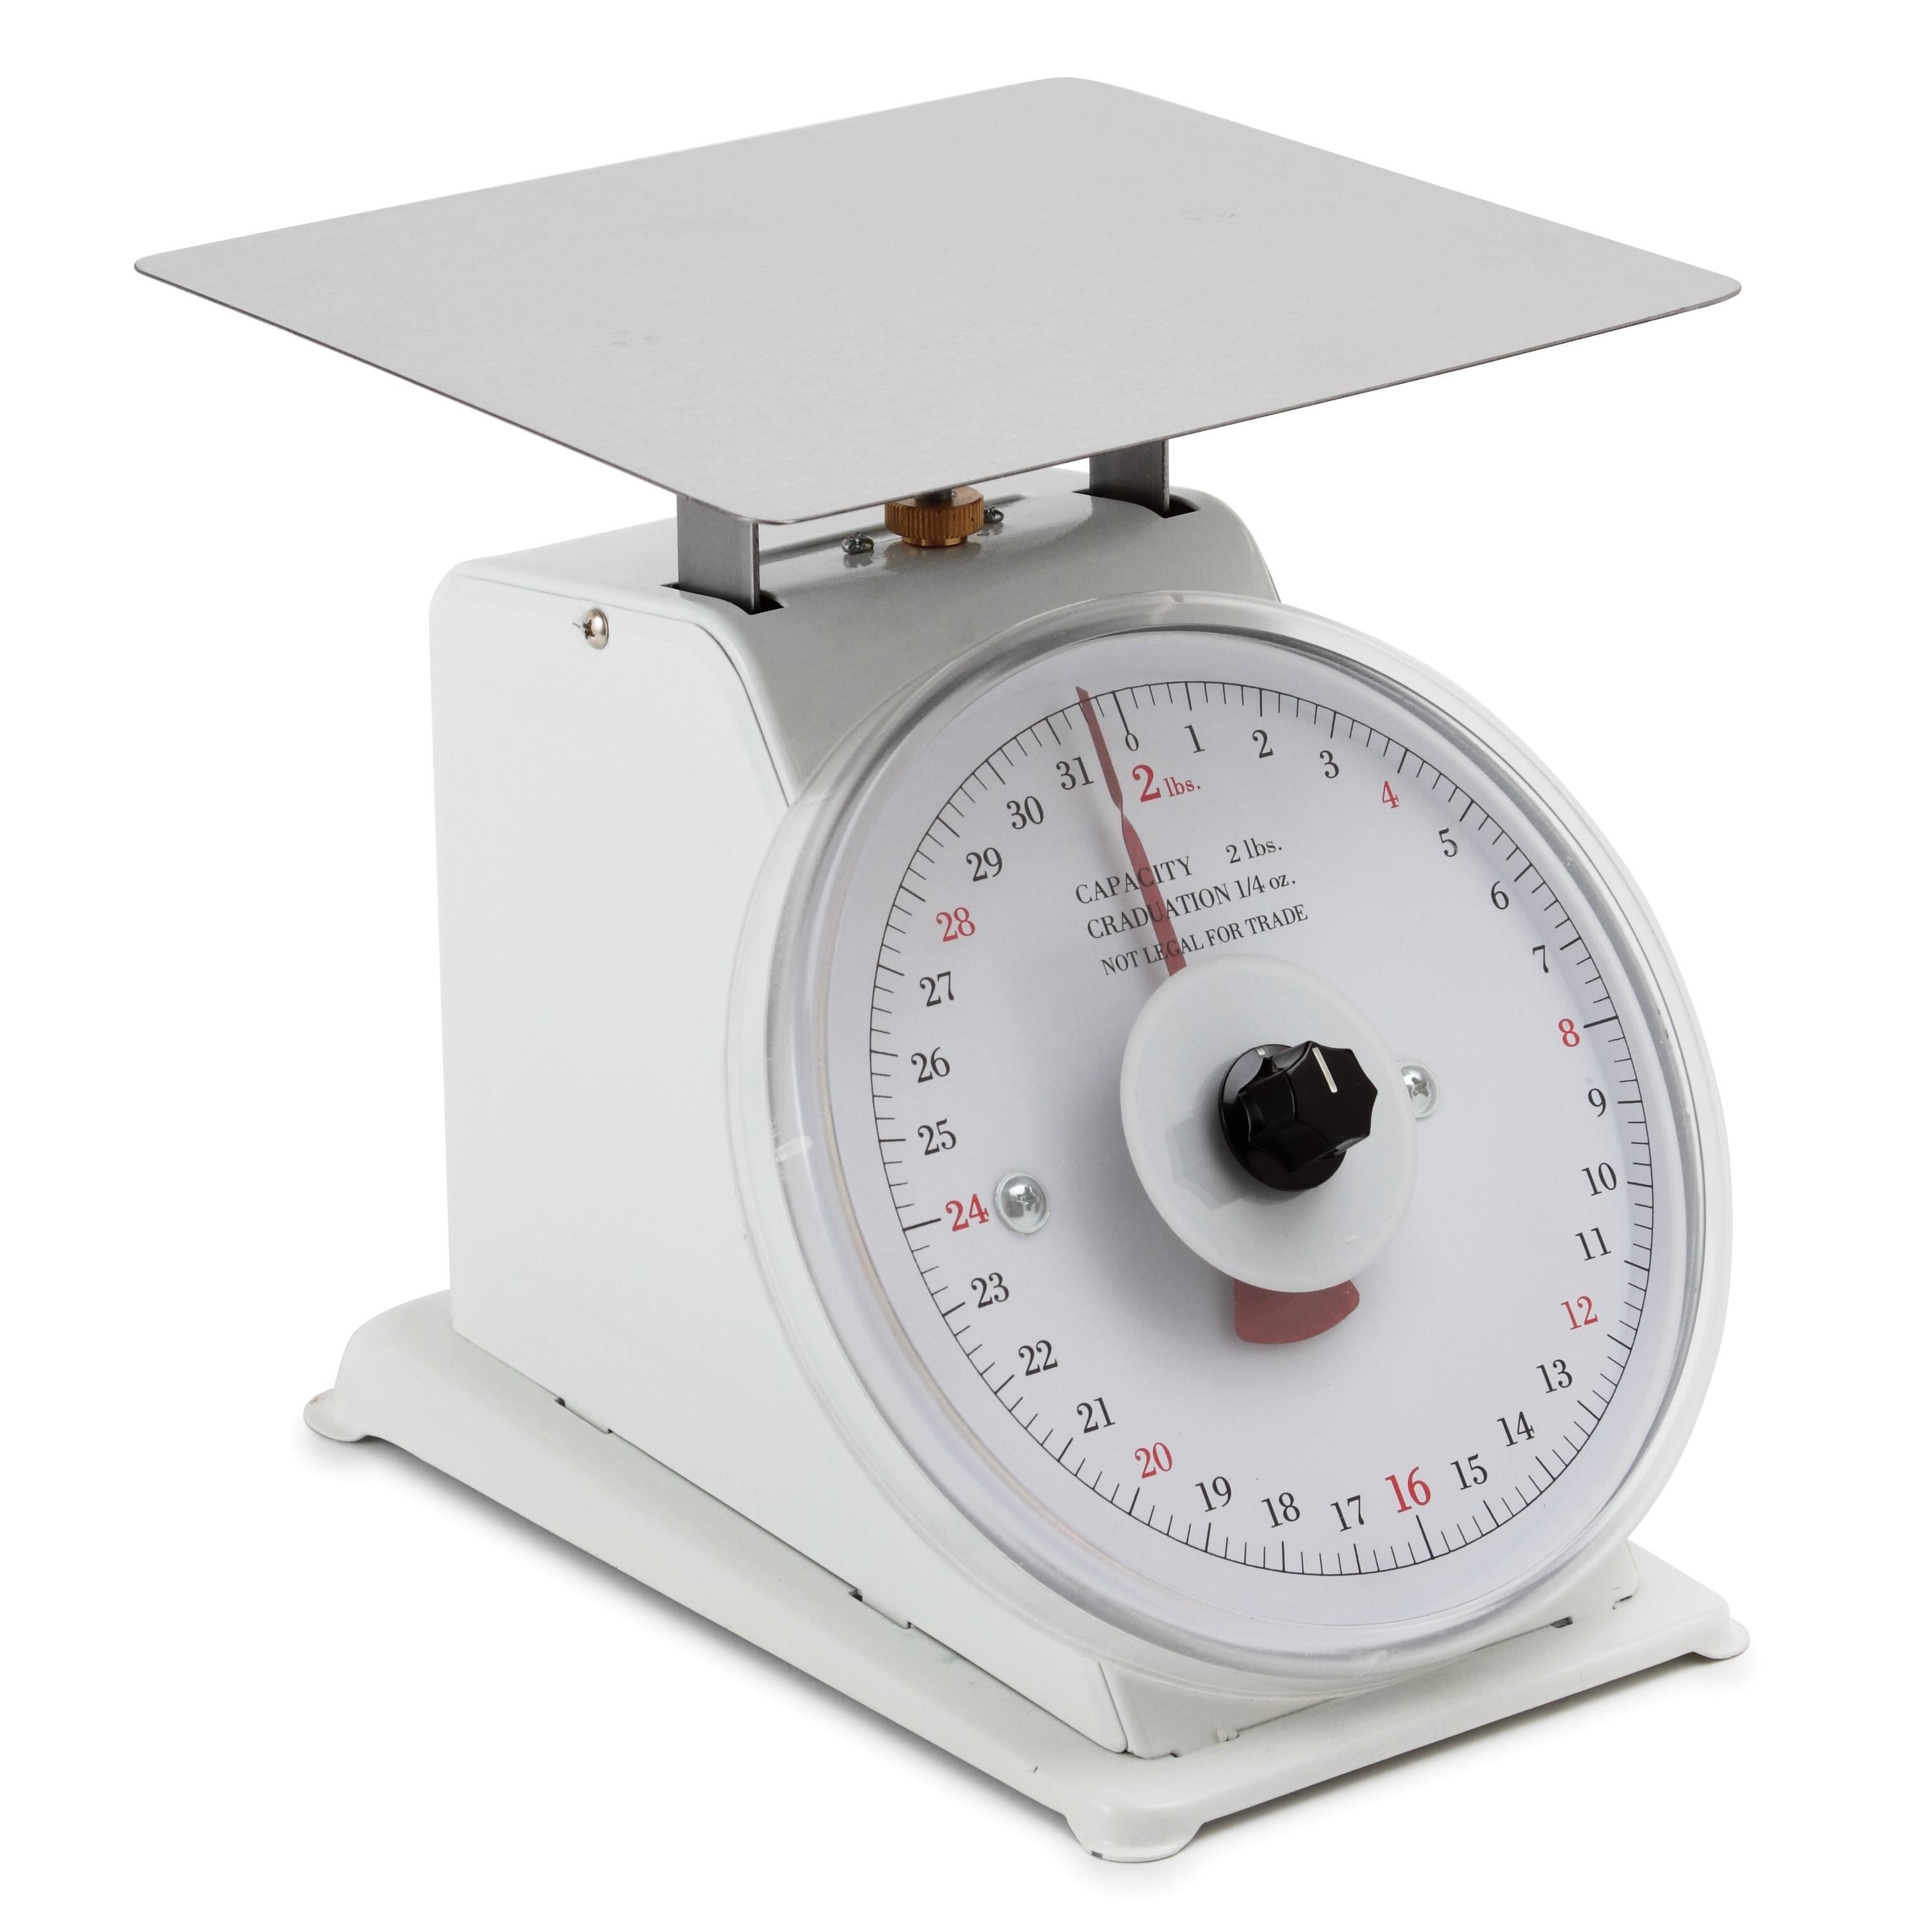 Royal Industries ROY S 6 2 R scale, portion, dial